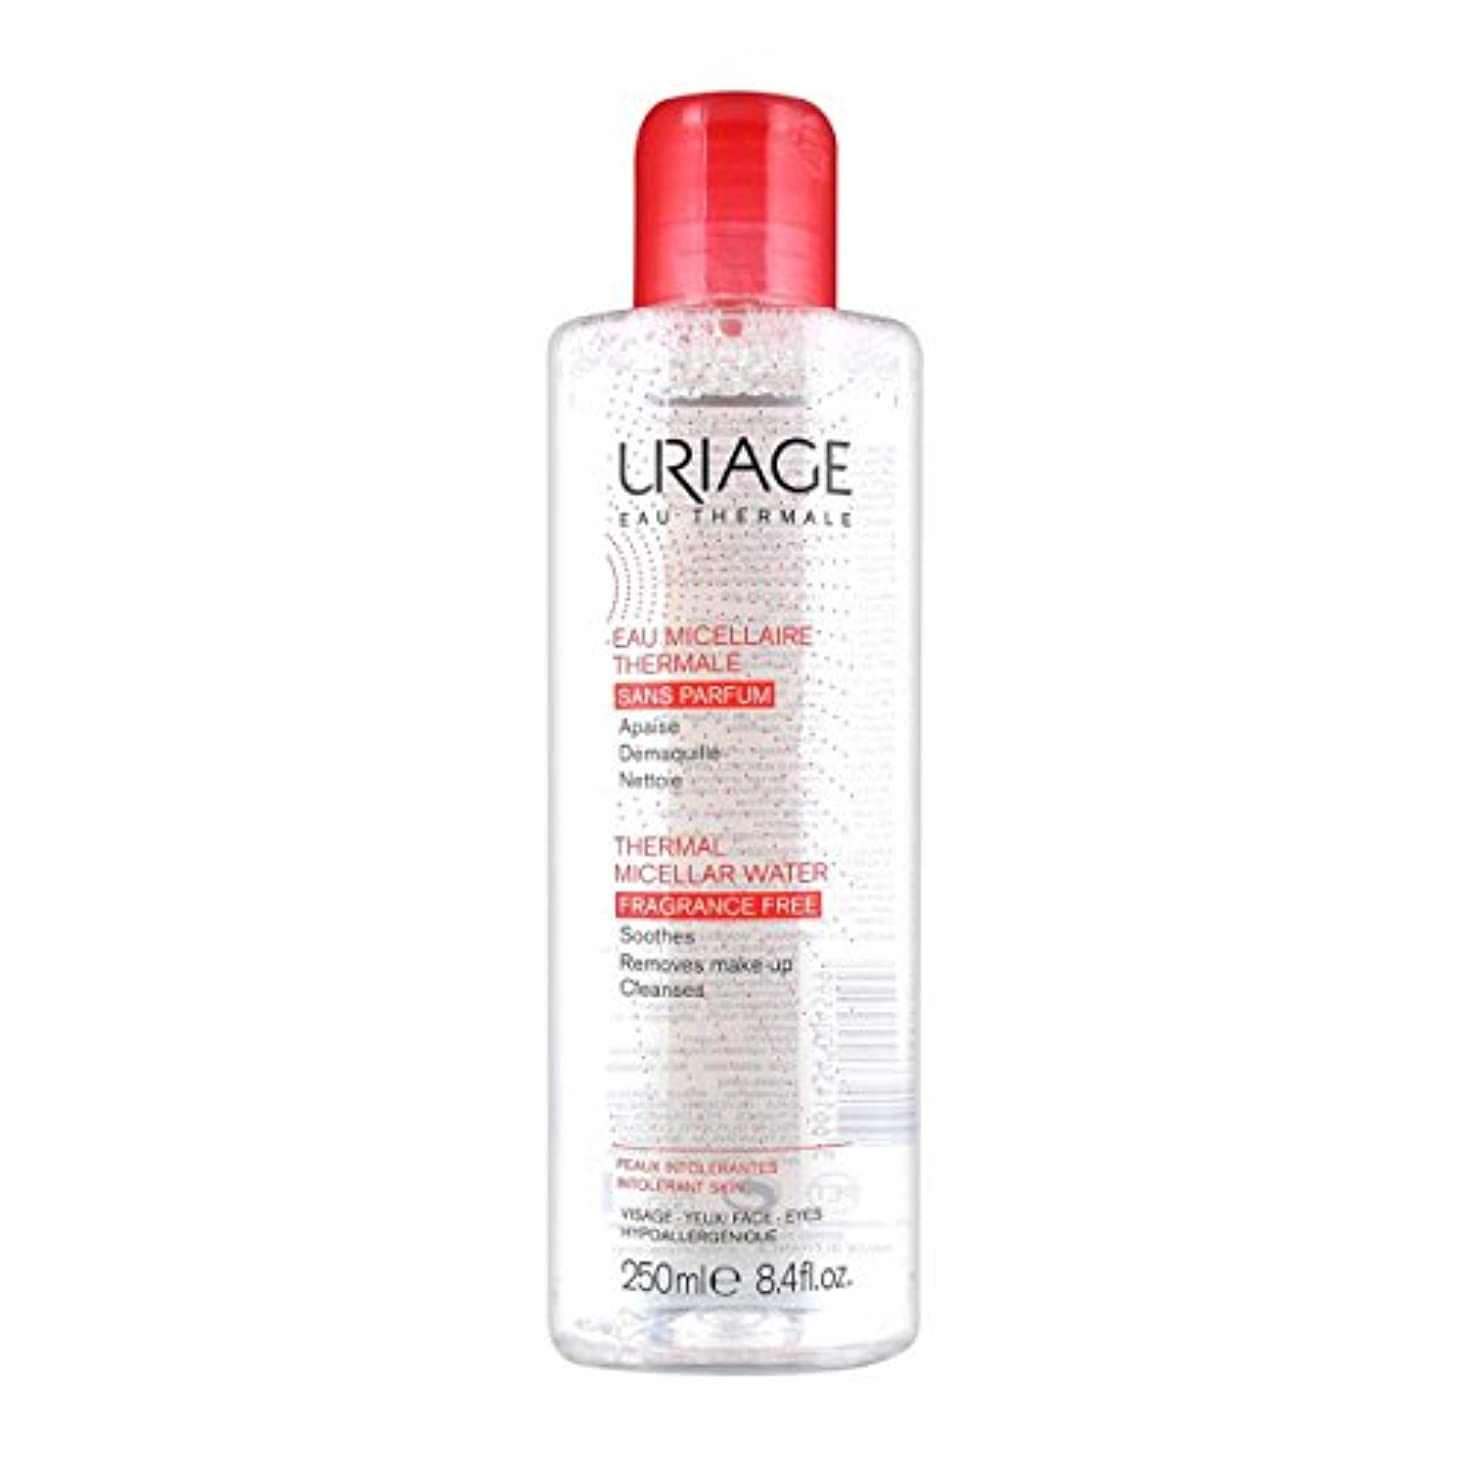 Uriage Thermal Micellar Water Fragrance Free Intolerant Skin 250ml [並行輸入品]